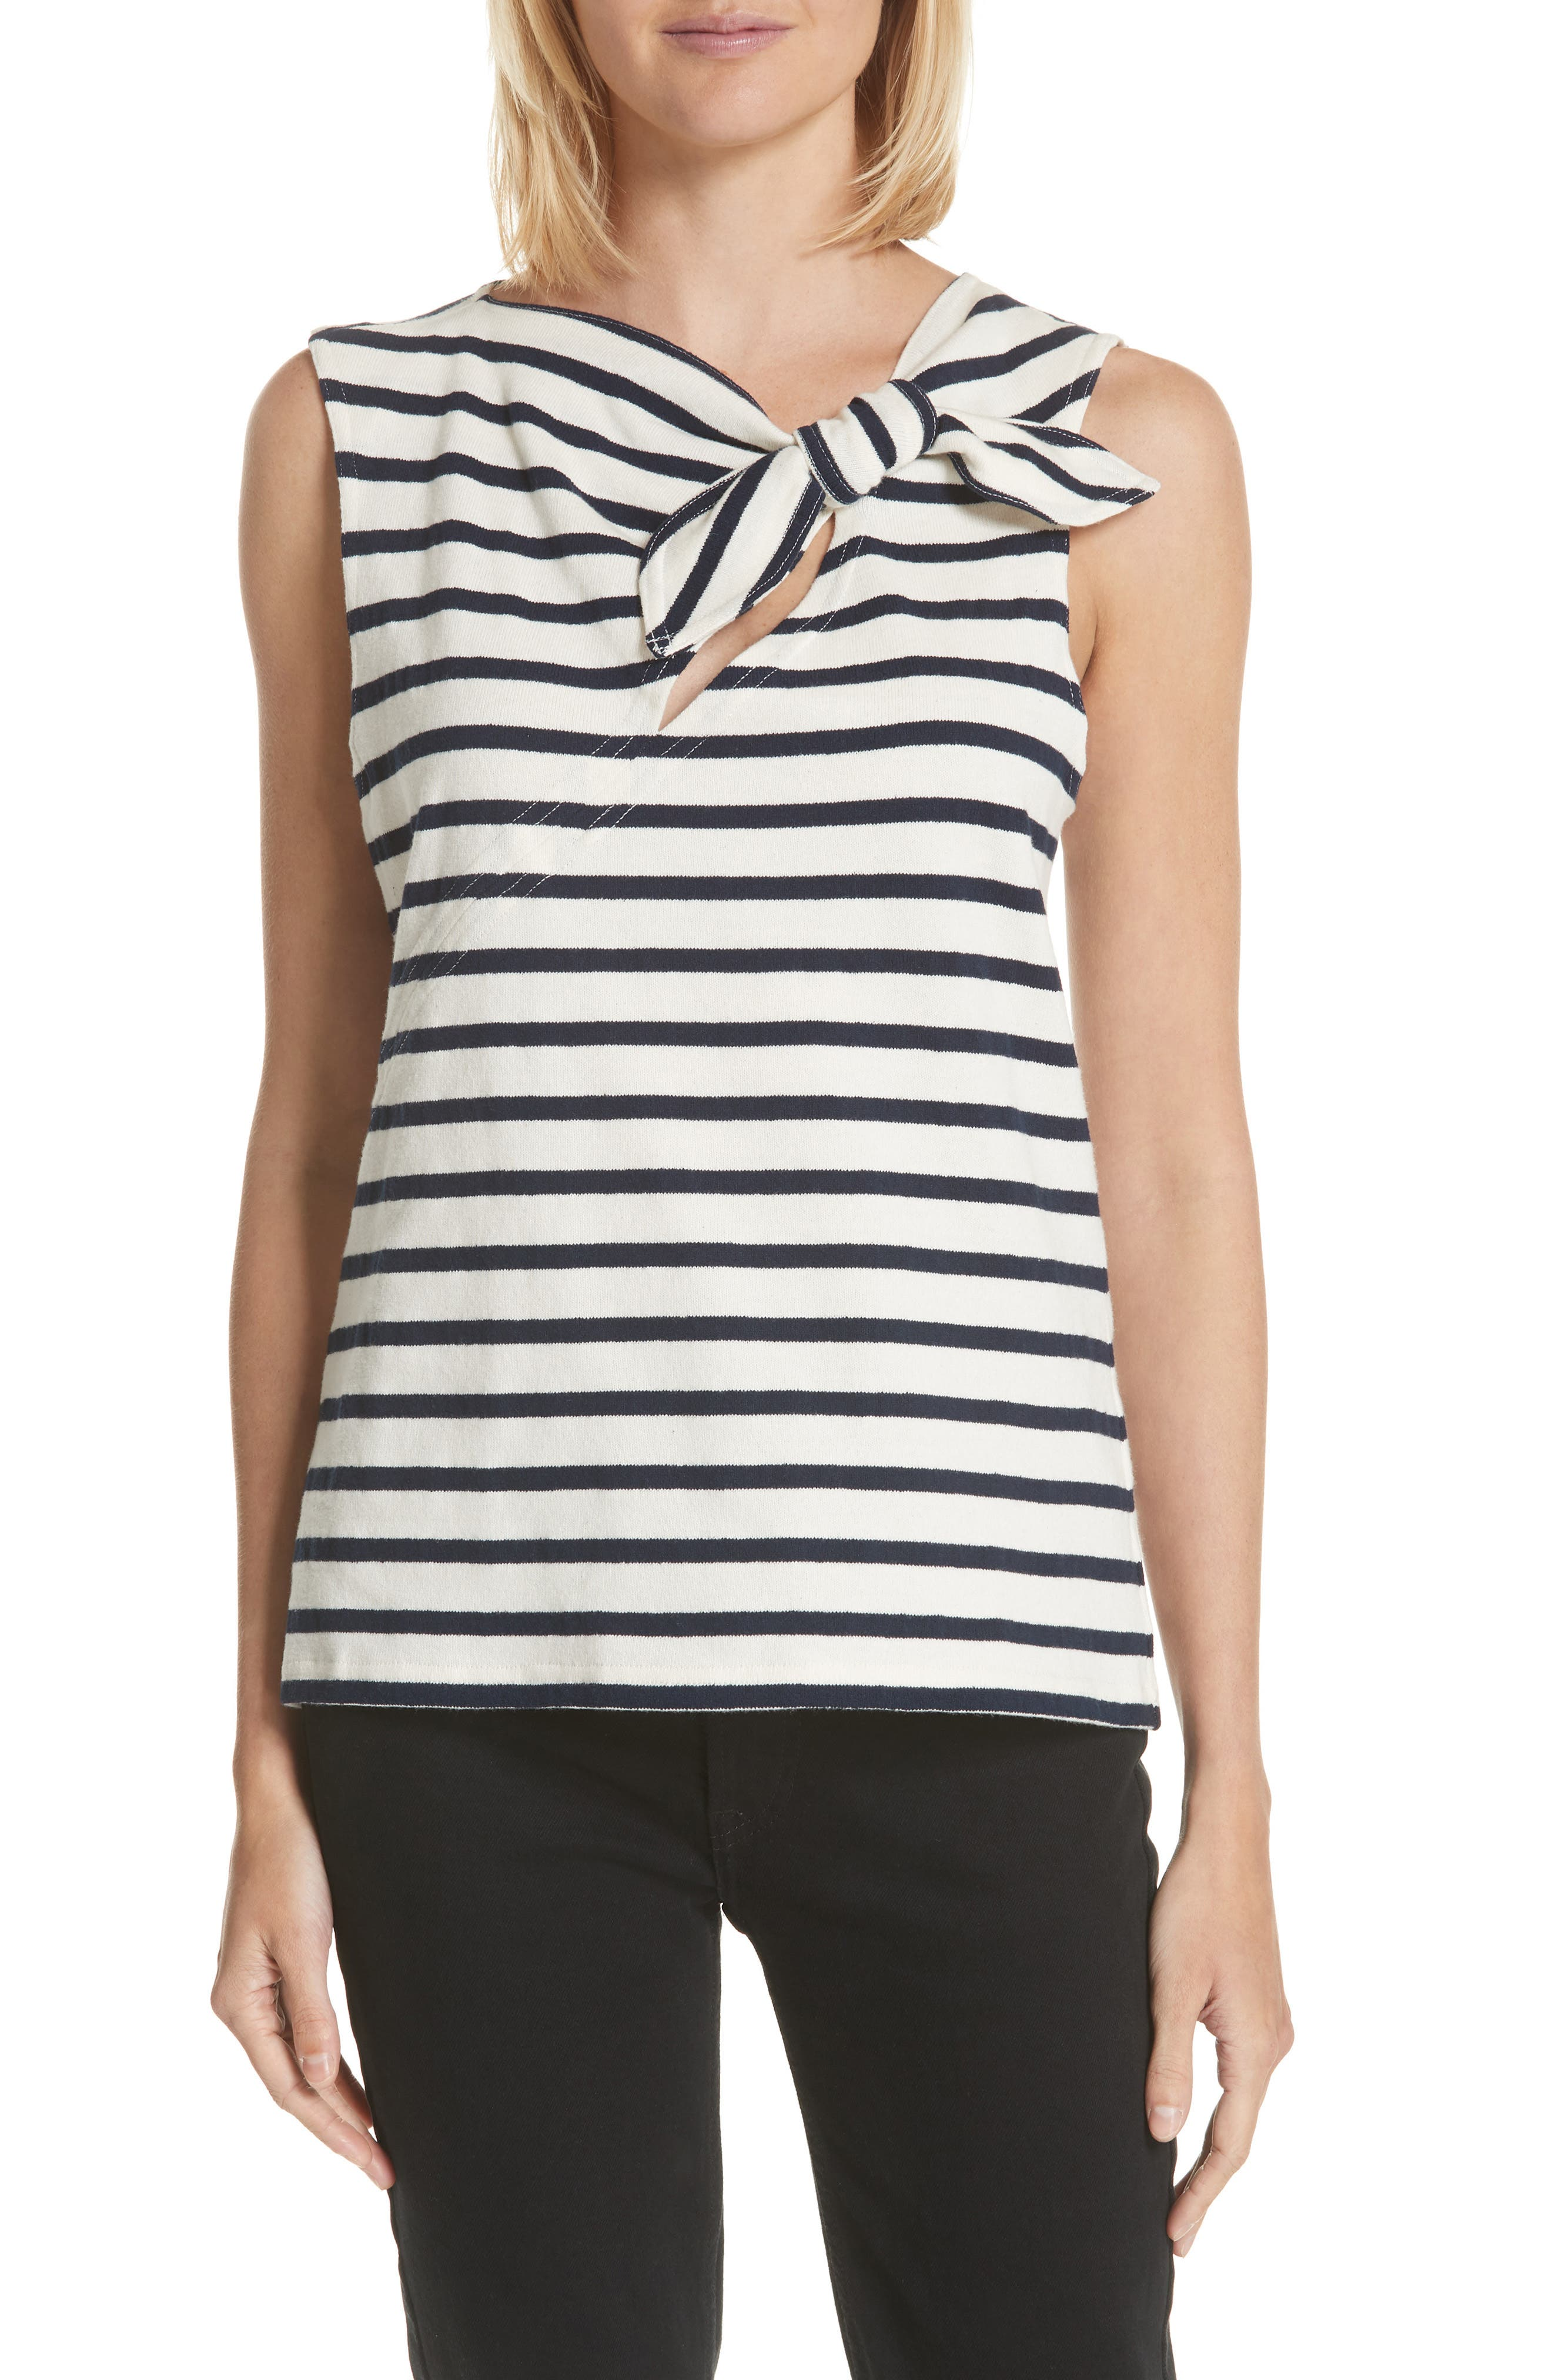 Derek Lam 10 Crosby Tie Back Stripe Top